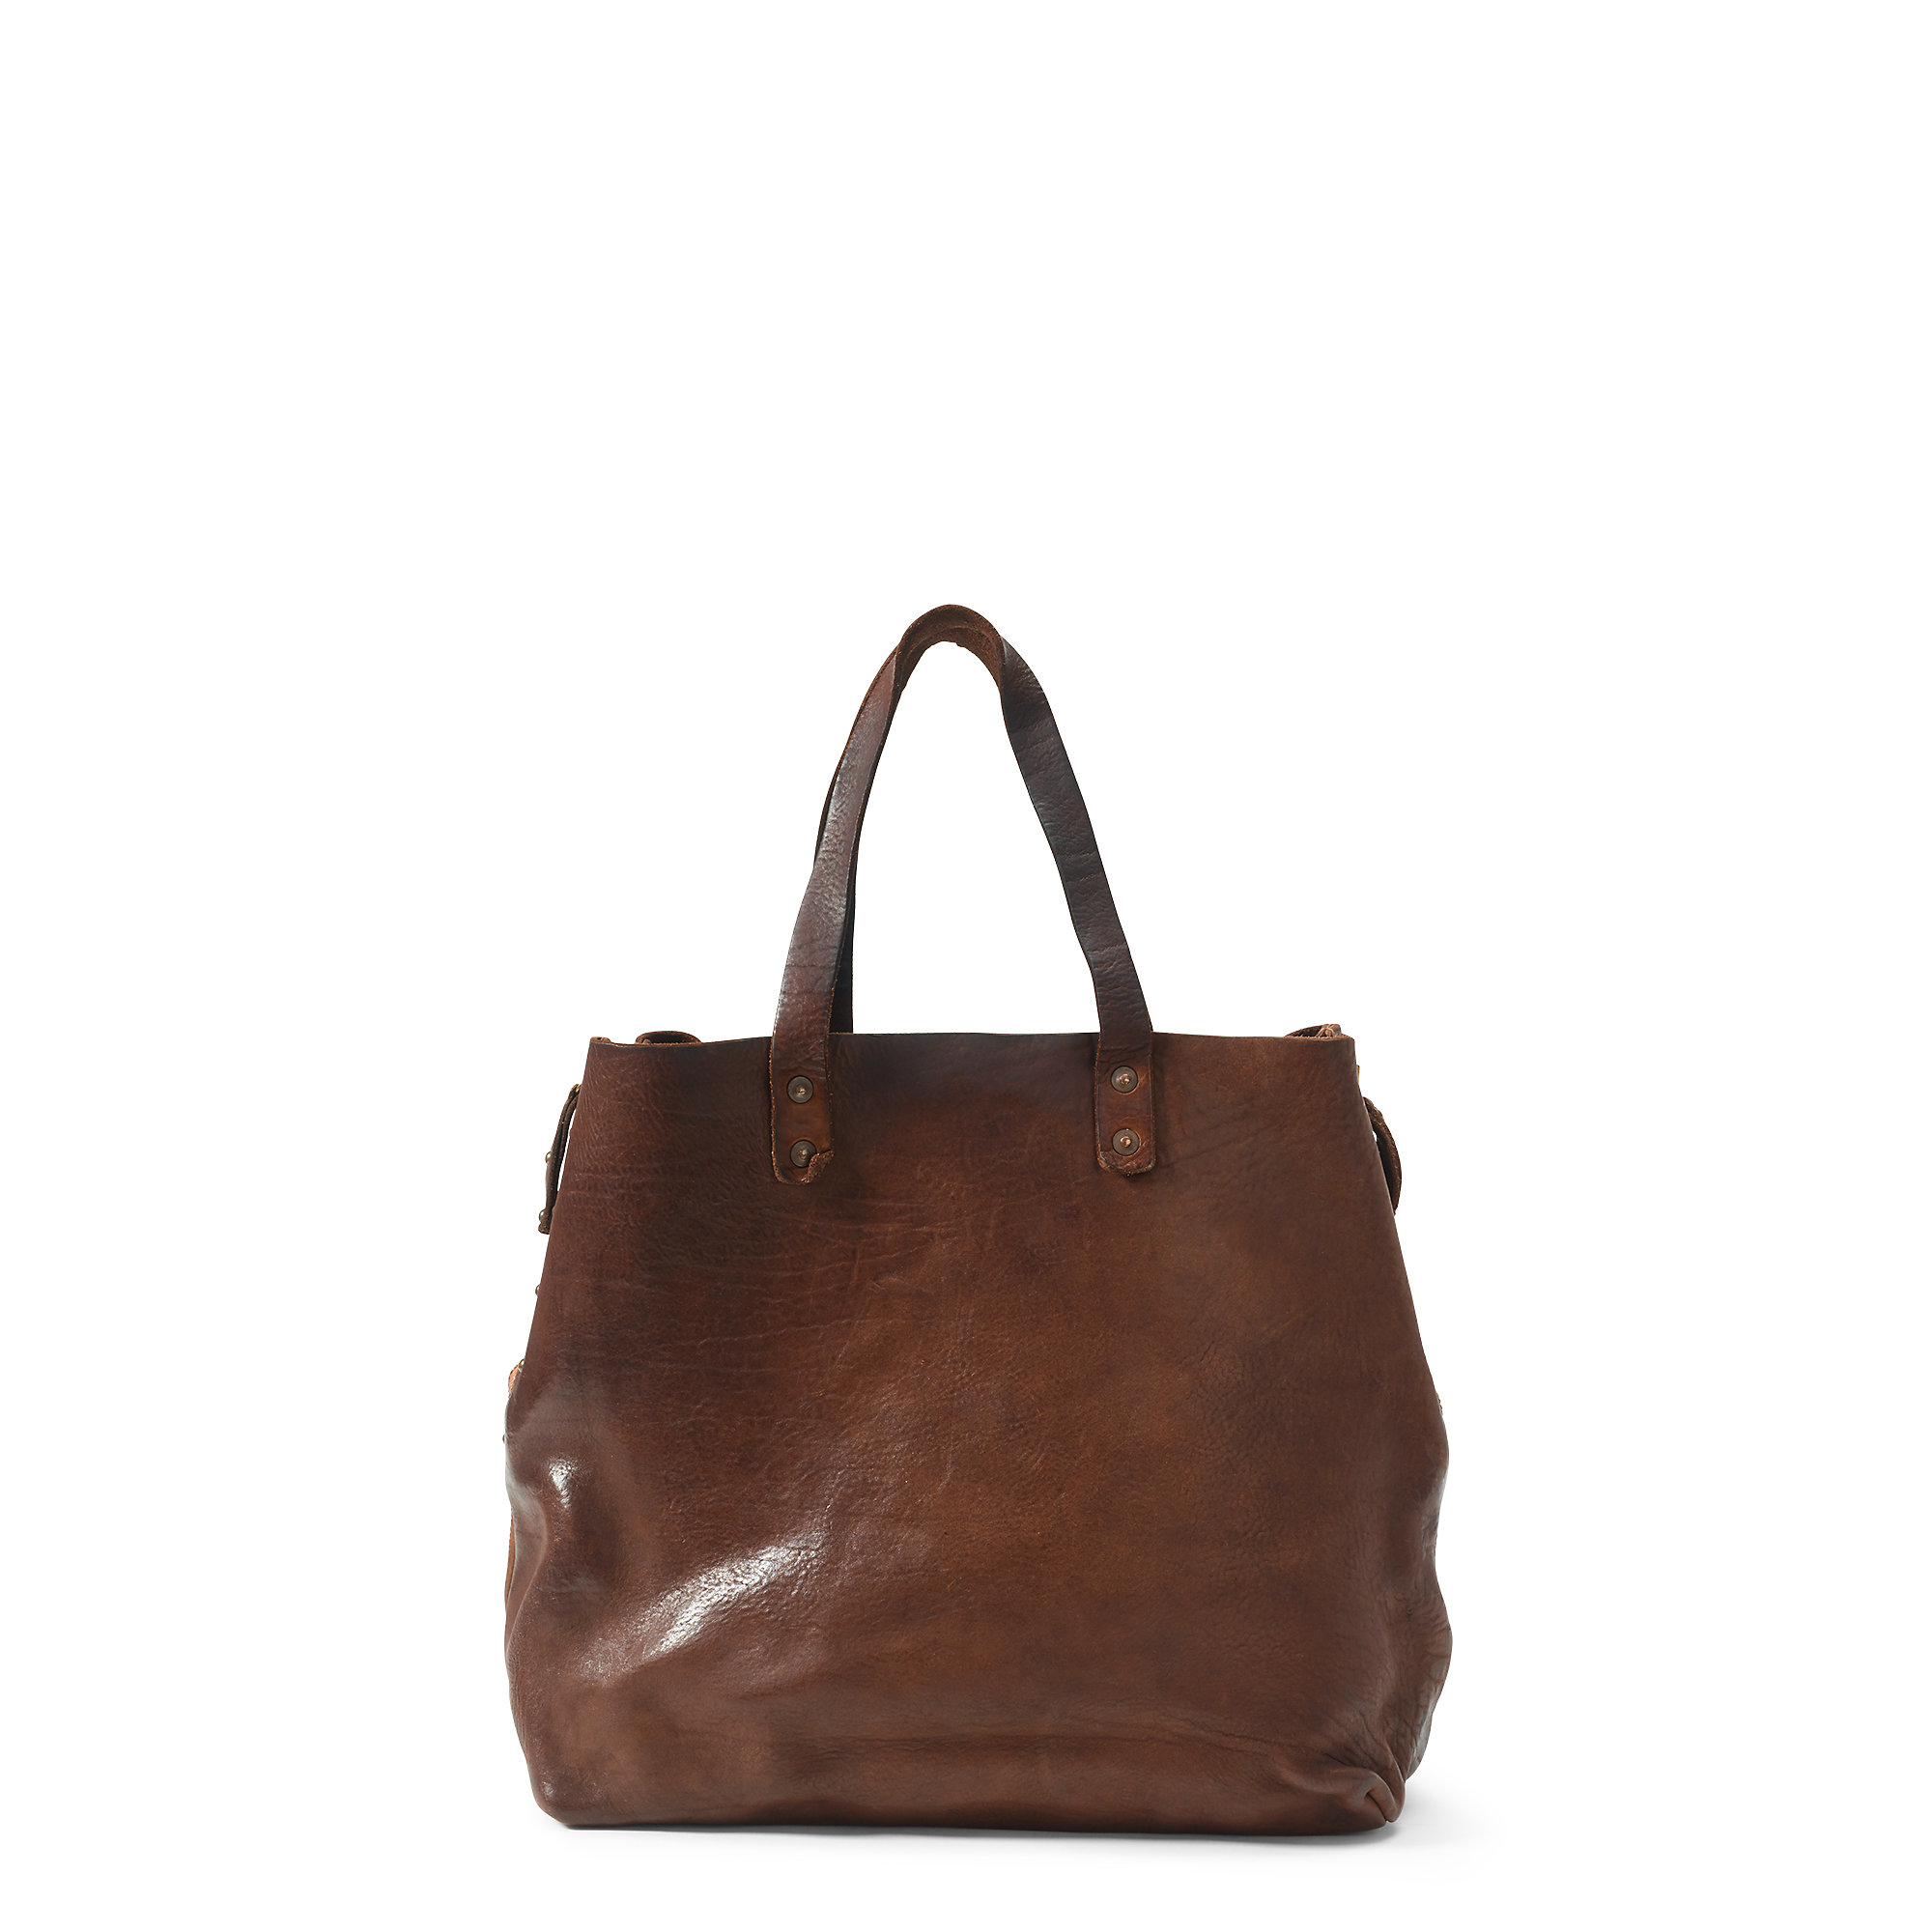 c340363568 Lyst - Polo Ralph Lauren Large Burnished Leather Tote in Brown